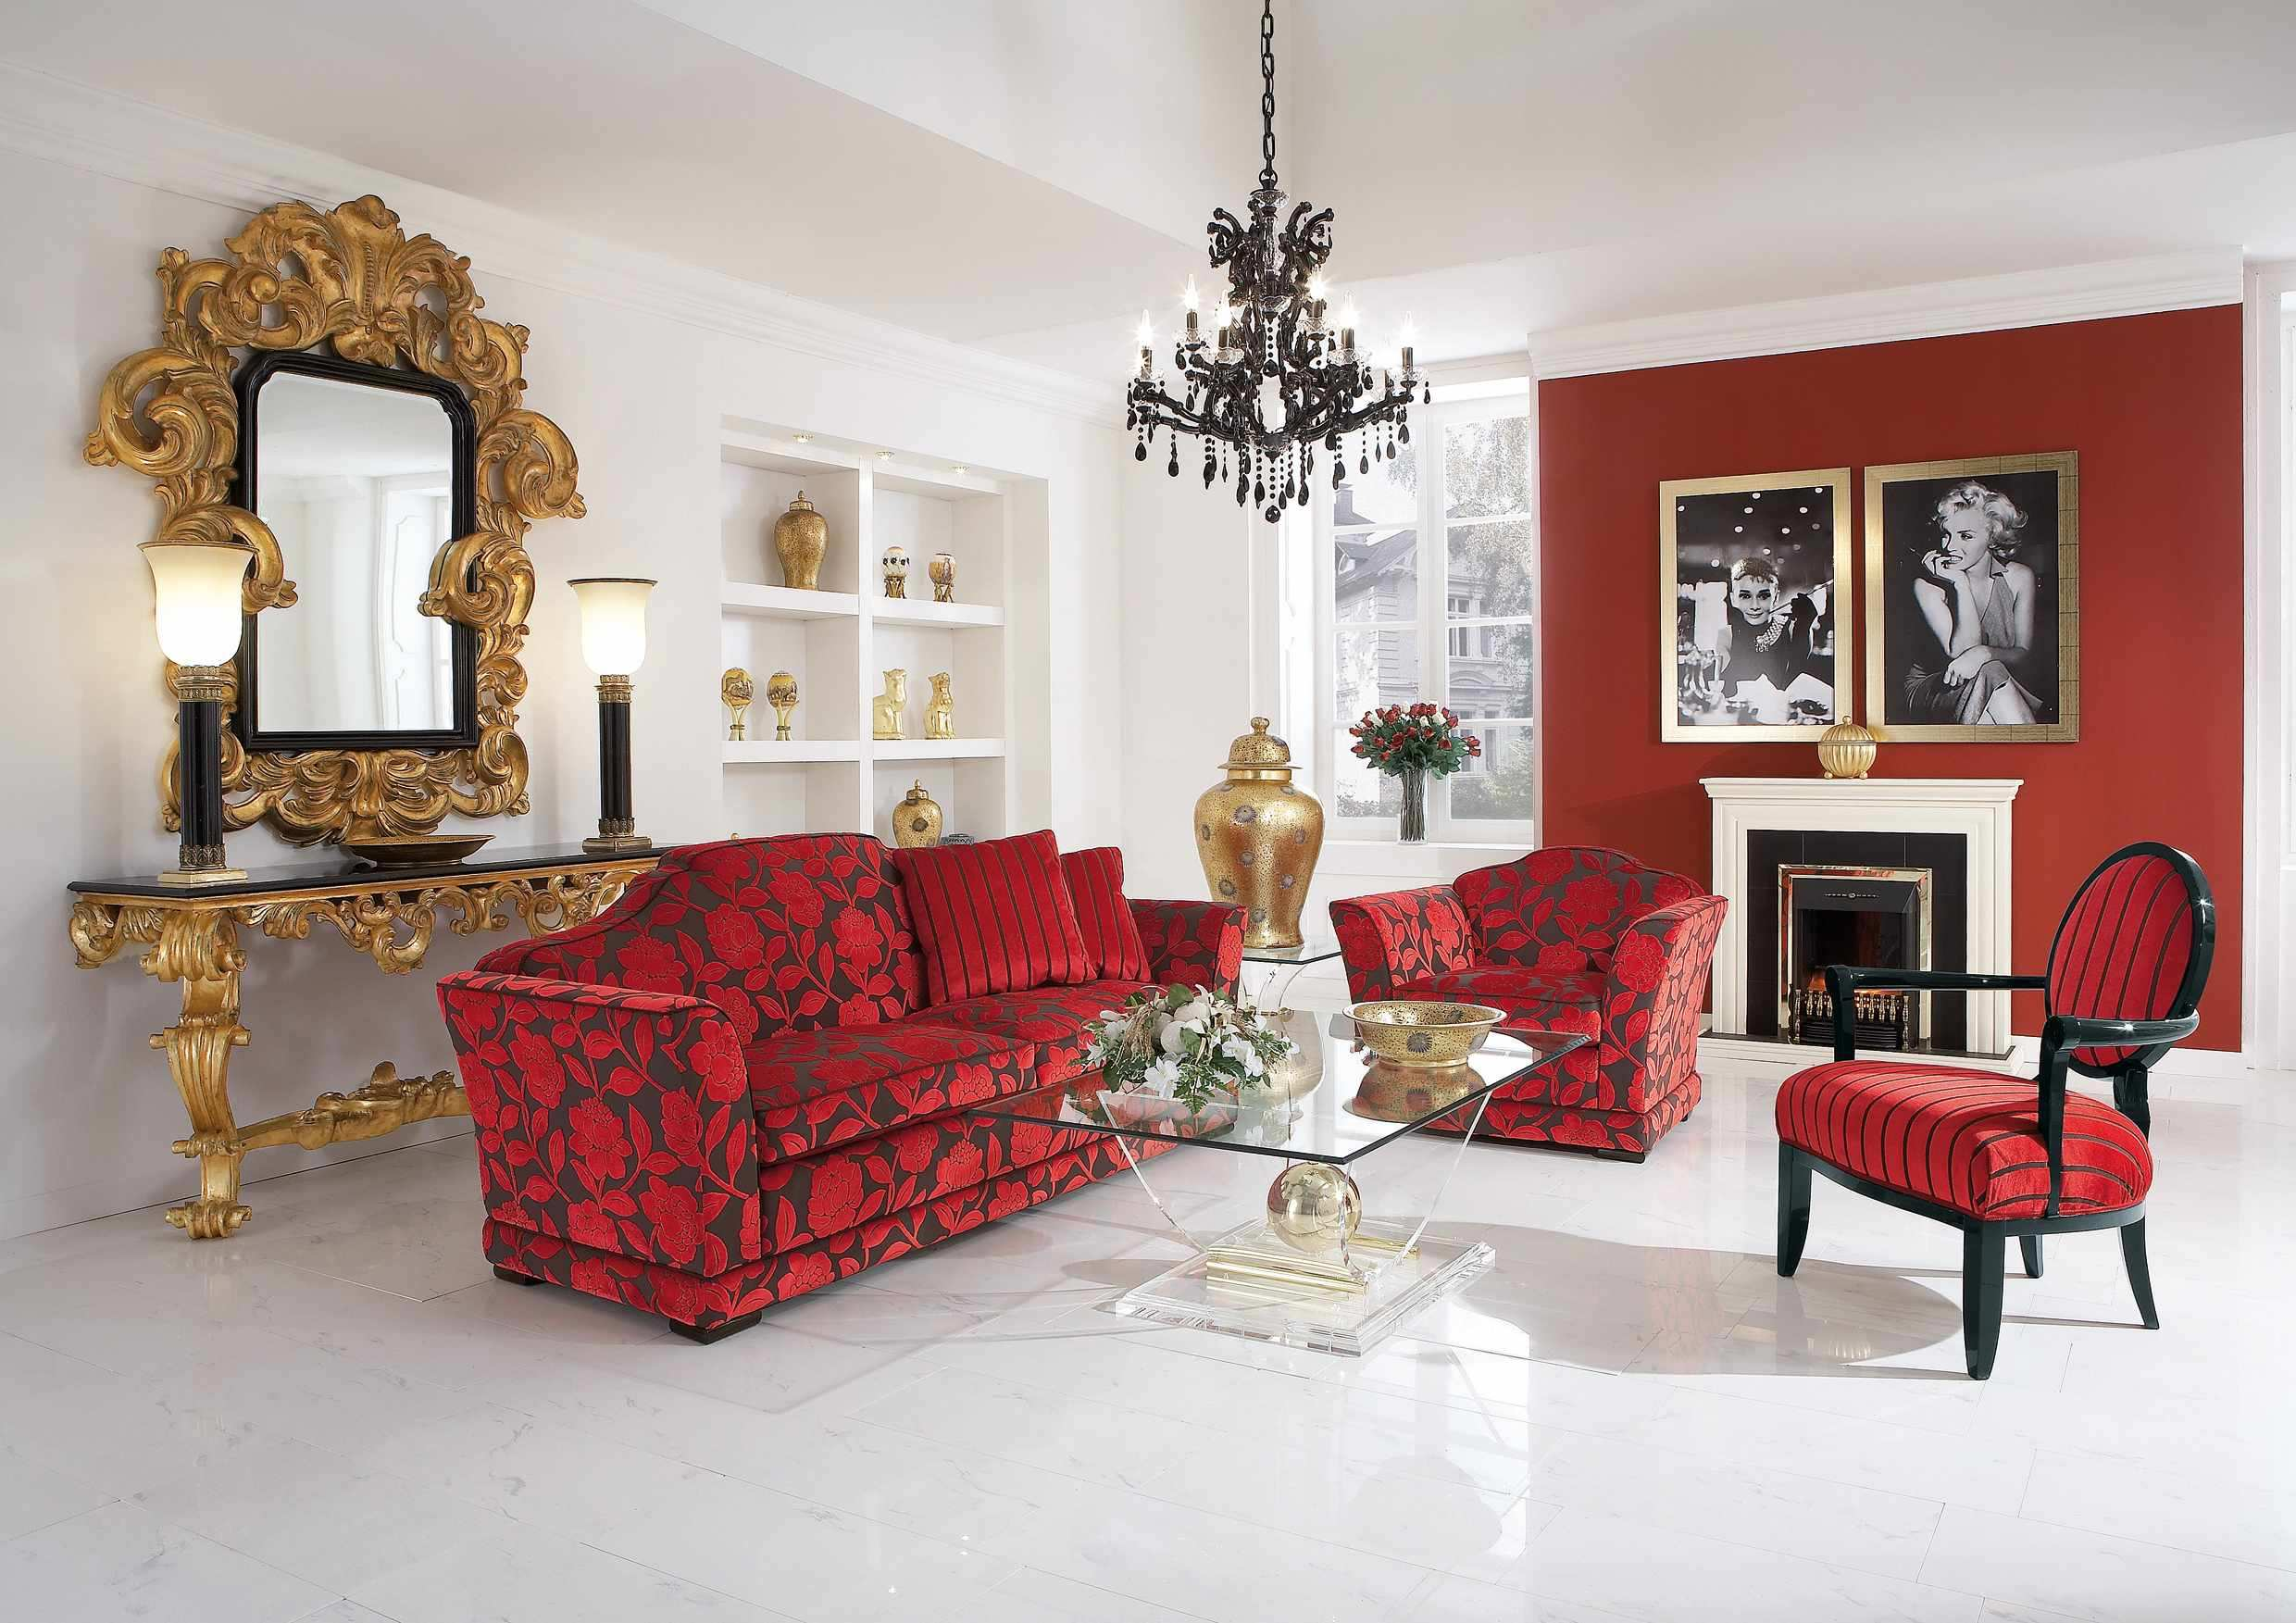 red-living-room-chairs-xfkv - design on vine